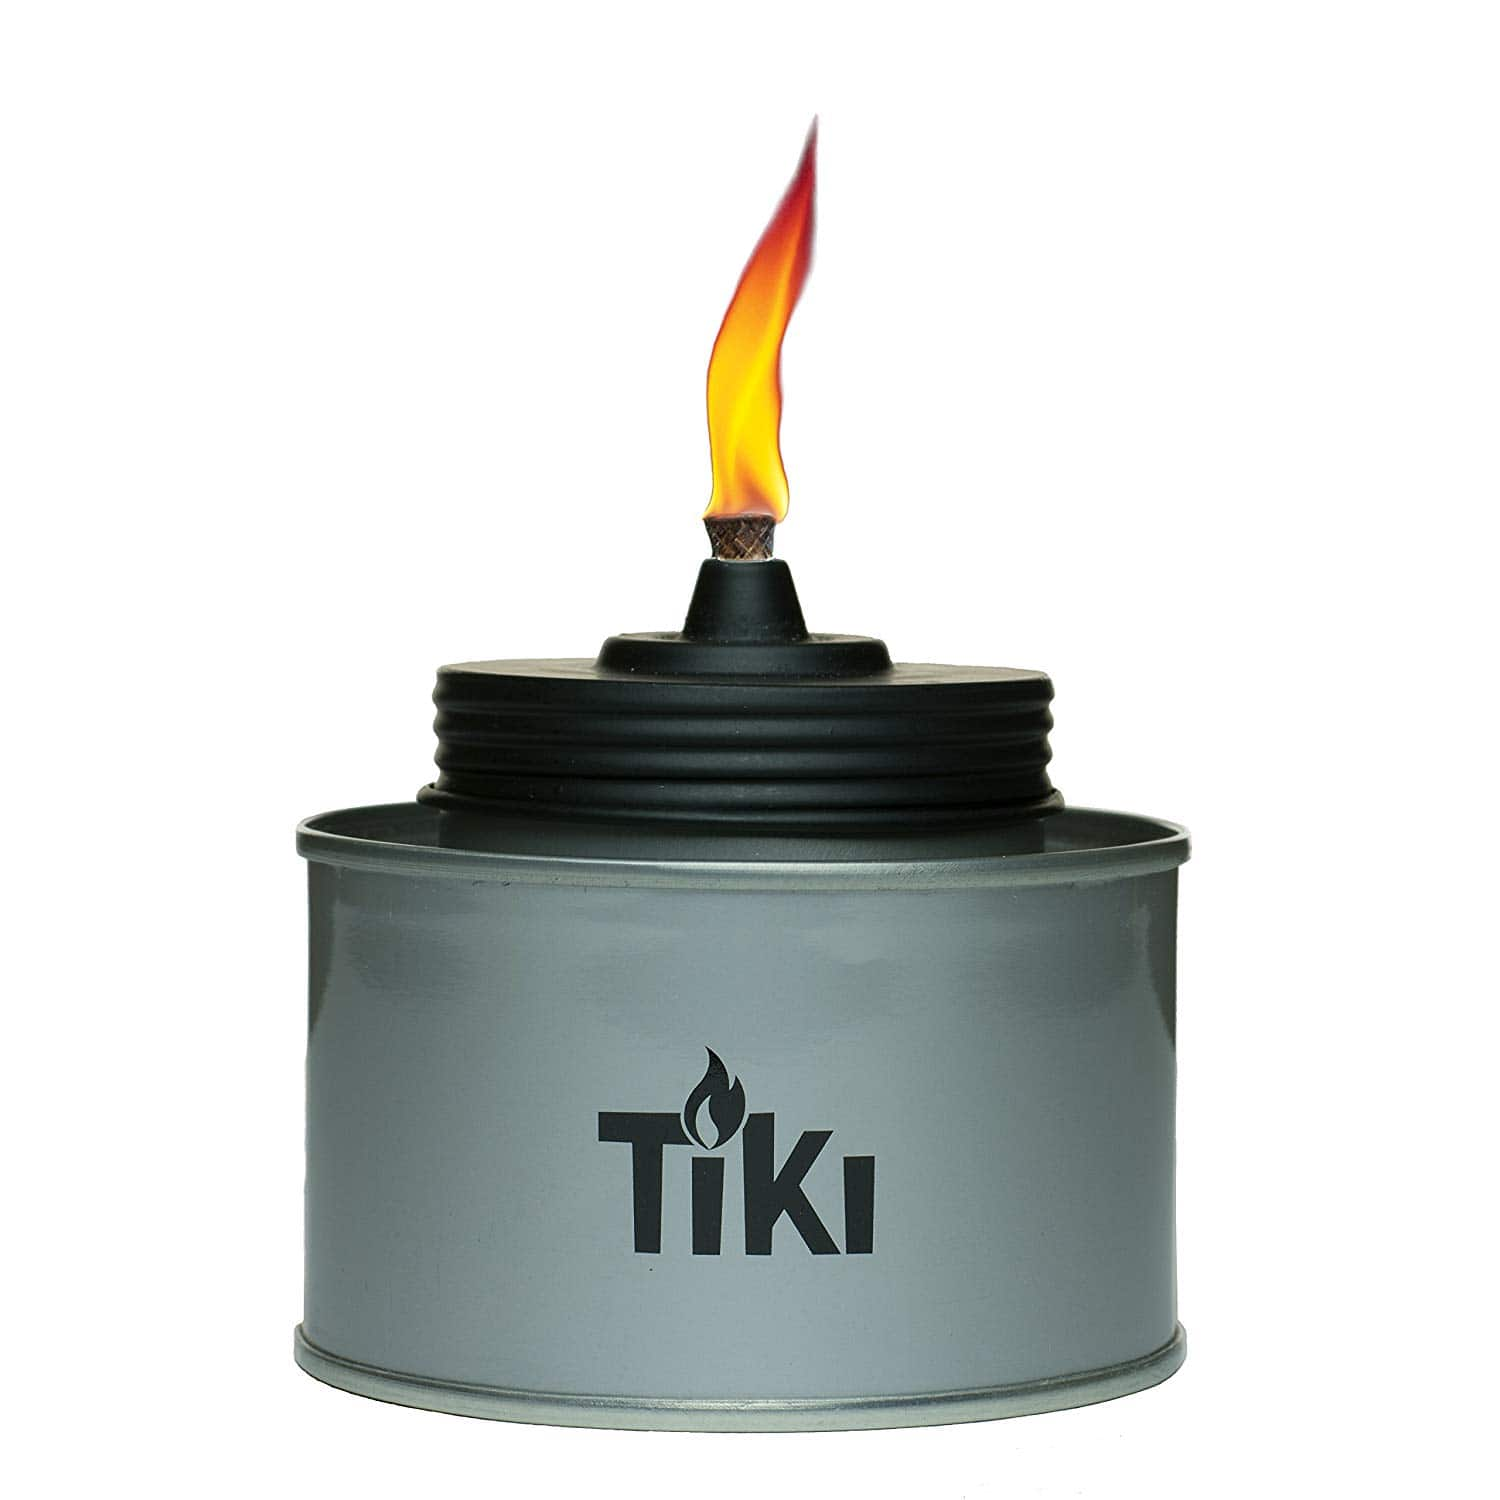 "TIKI Brand 4.5"" TIKI Tin Table Torch (Silver) $0.75 + Free Prime Shipping"